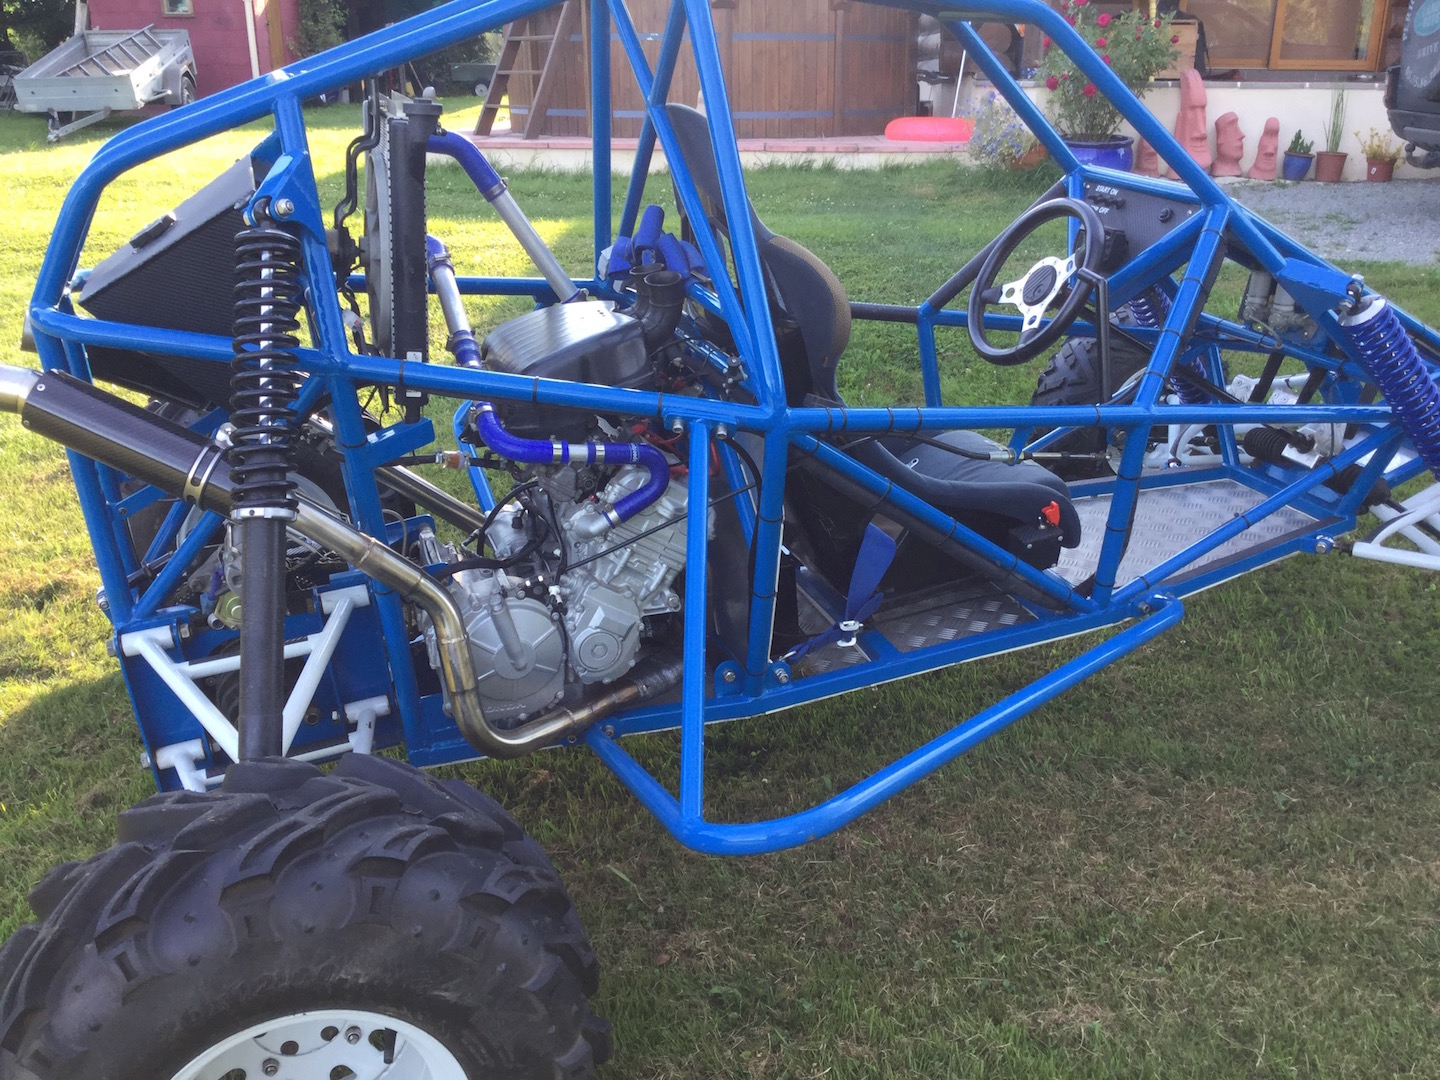 Barracuda Buggy For Sale >> Edge Barracuda off-road Race Buggy & Trailer | Paddock 42